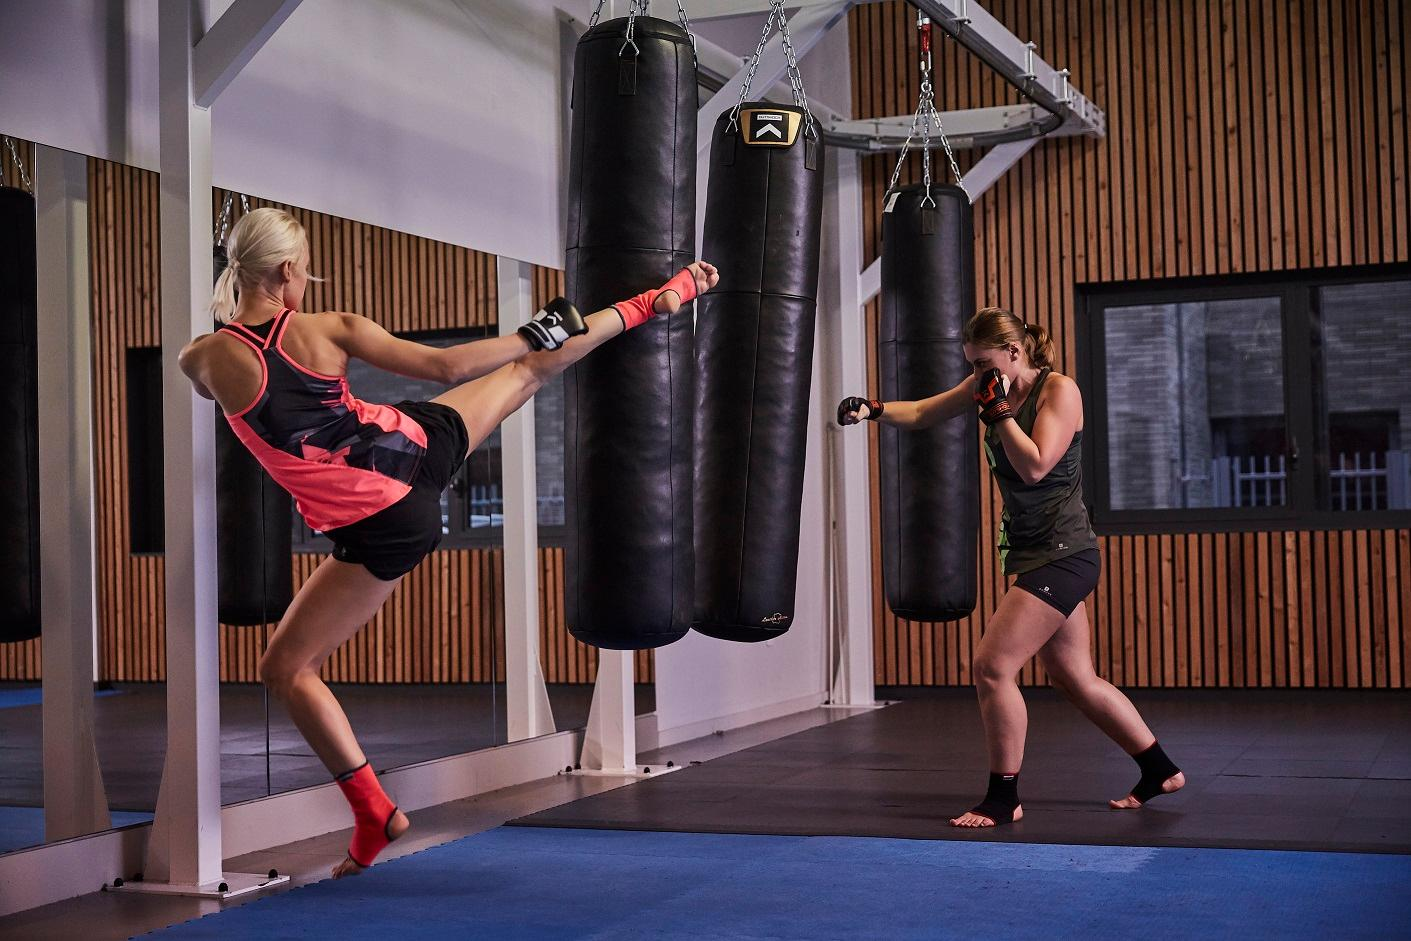 THE BENEFITS OF BOXING FOR WOMEN